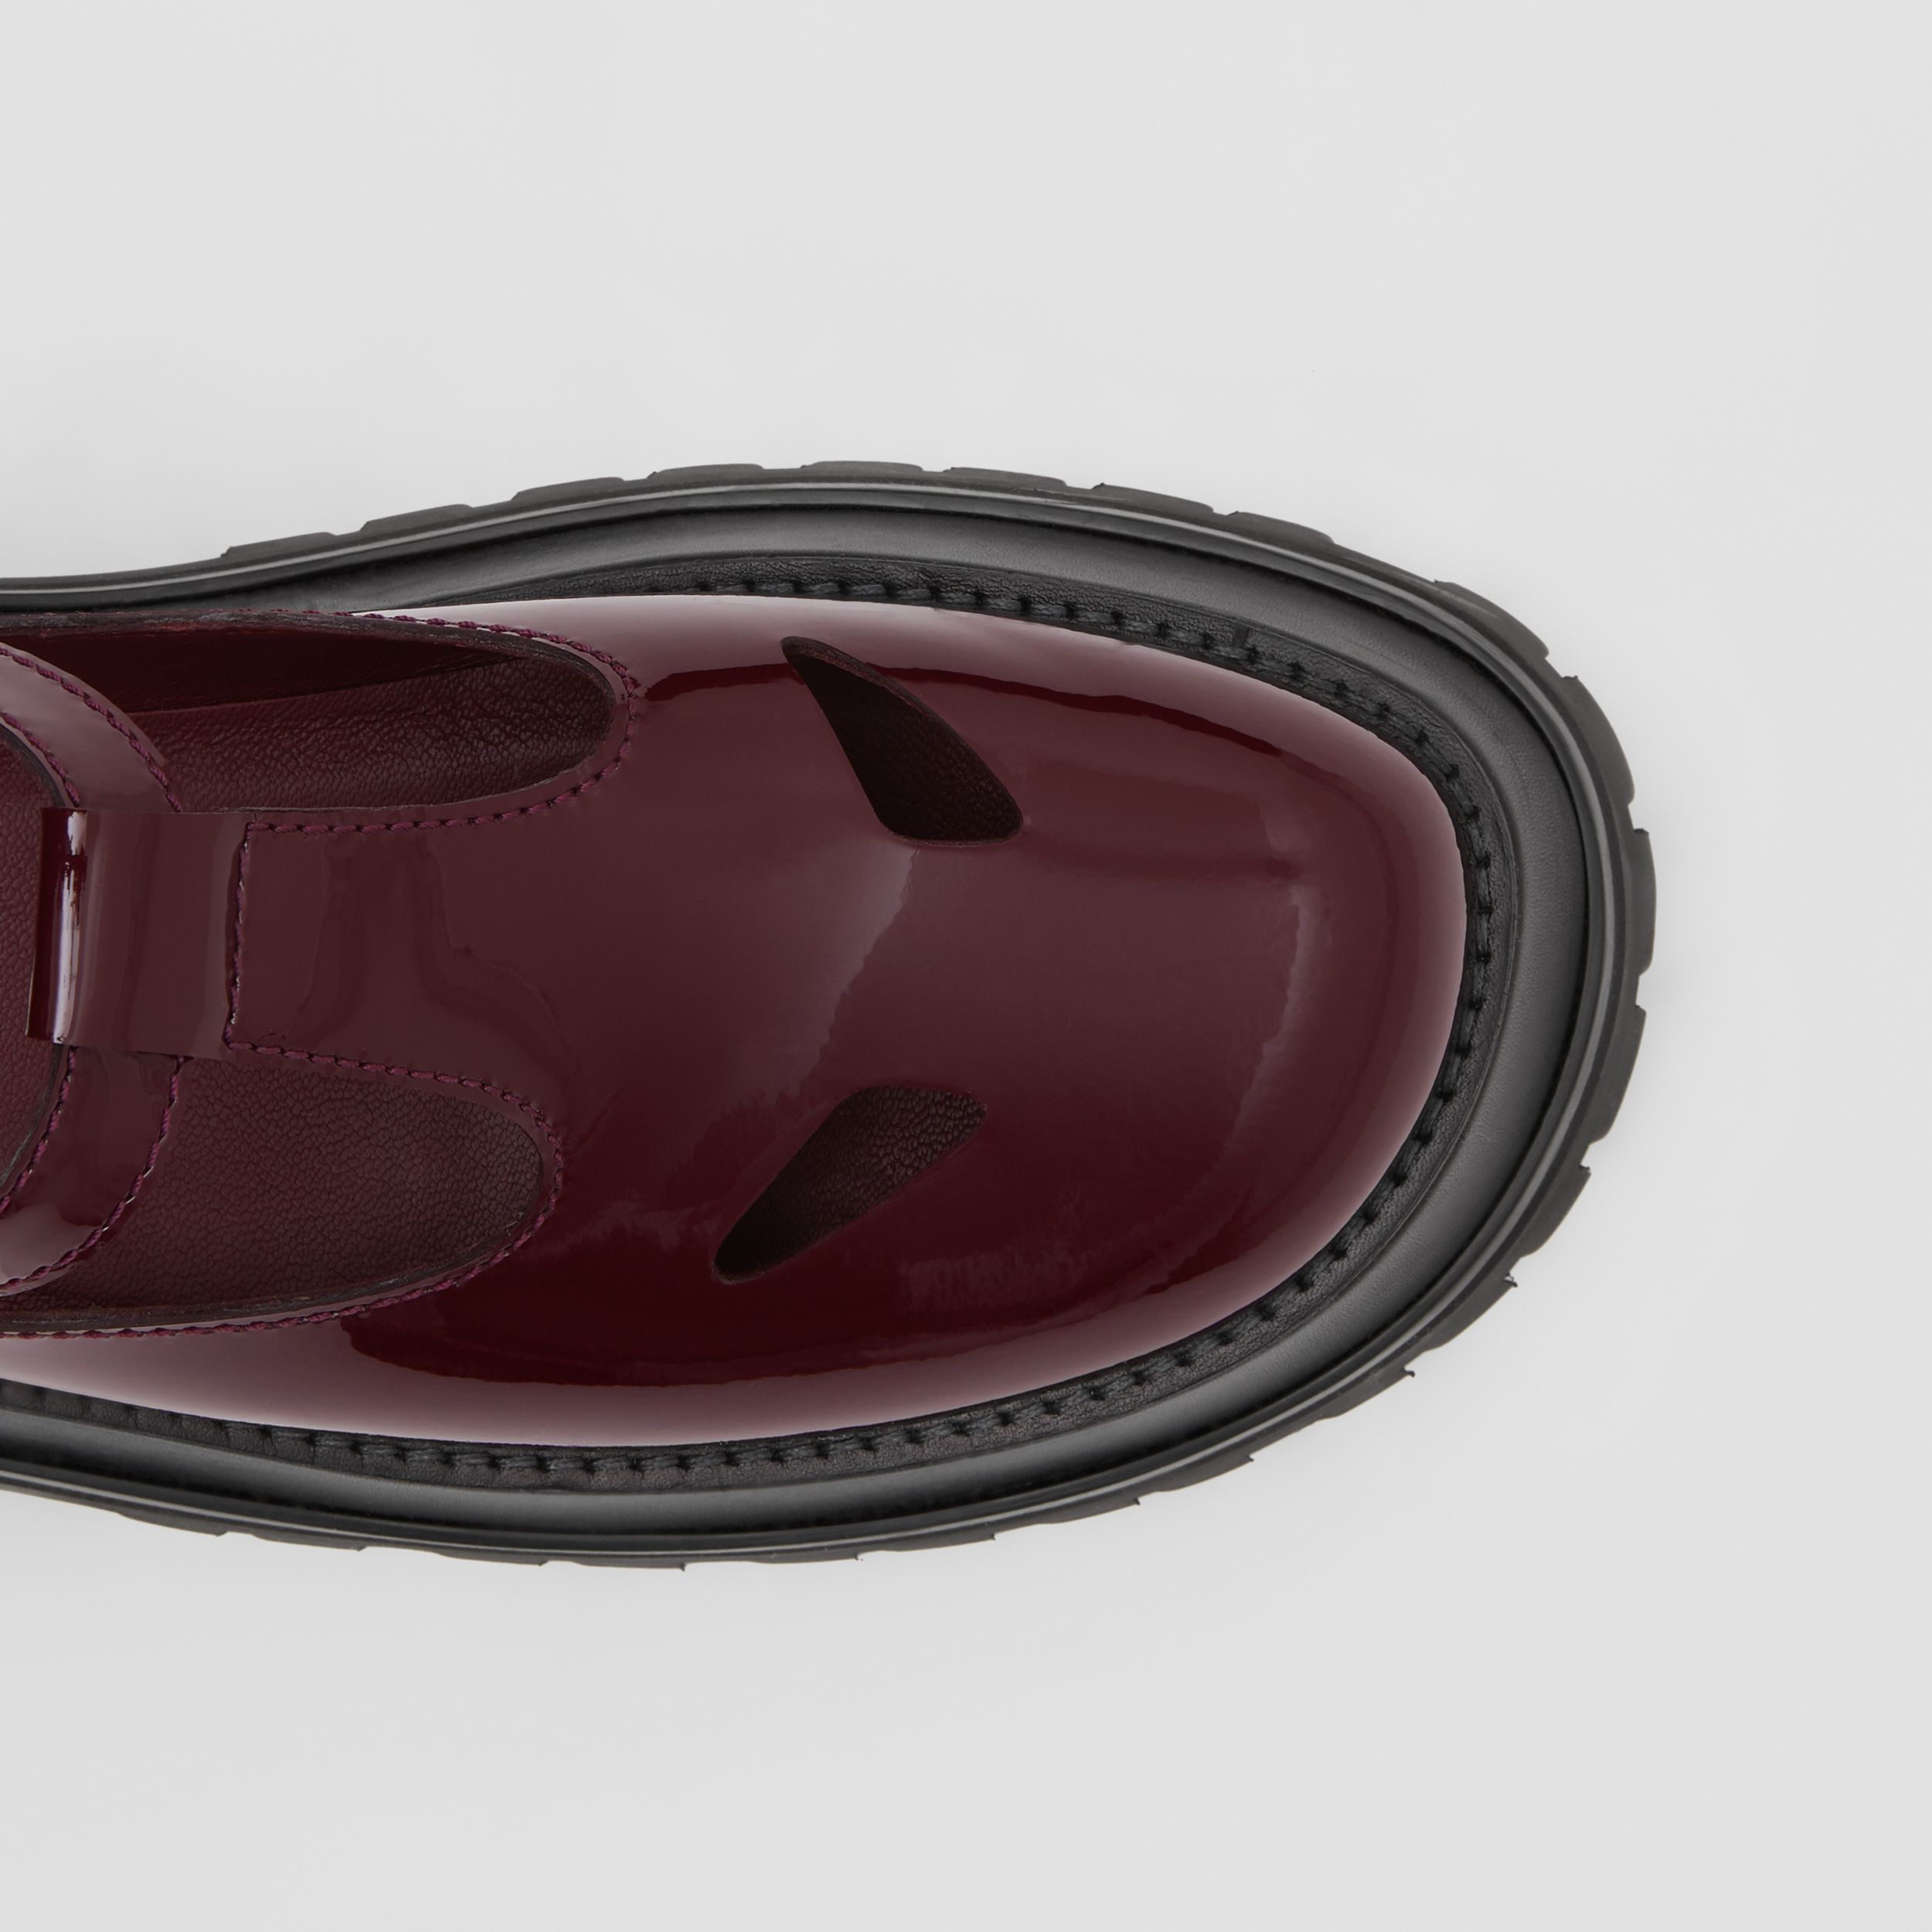 Patent Leather T-bar Shoes in Oxblood - Women | Burberry - 2